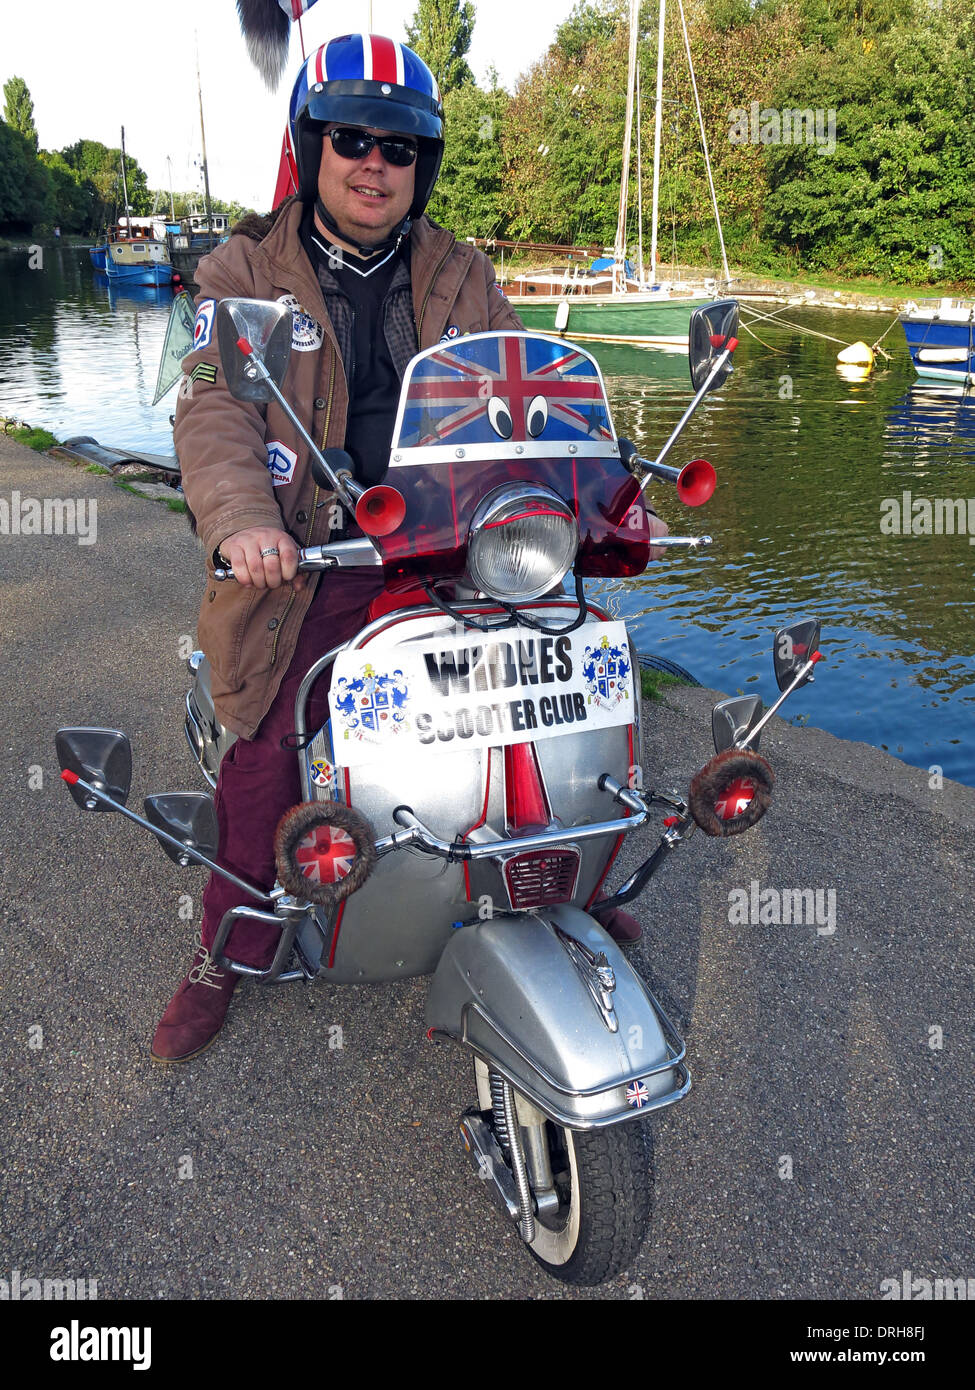 Rider from Widnes Scooter Club Halton North West England UK - Stock Image